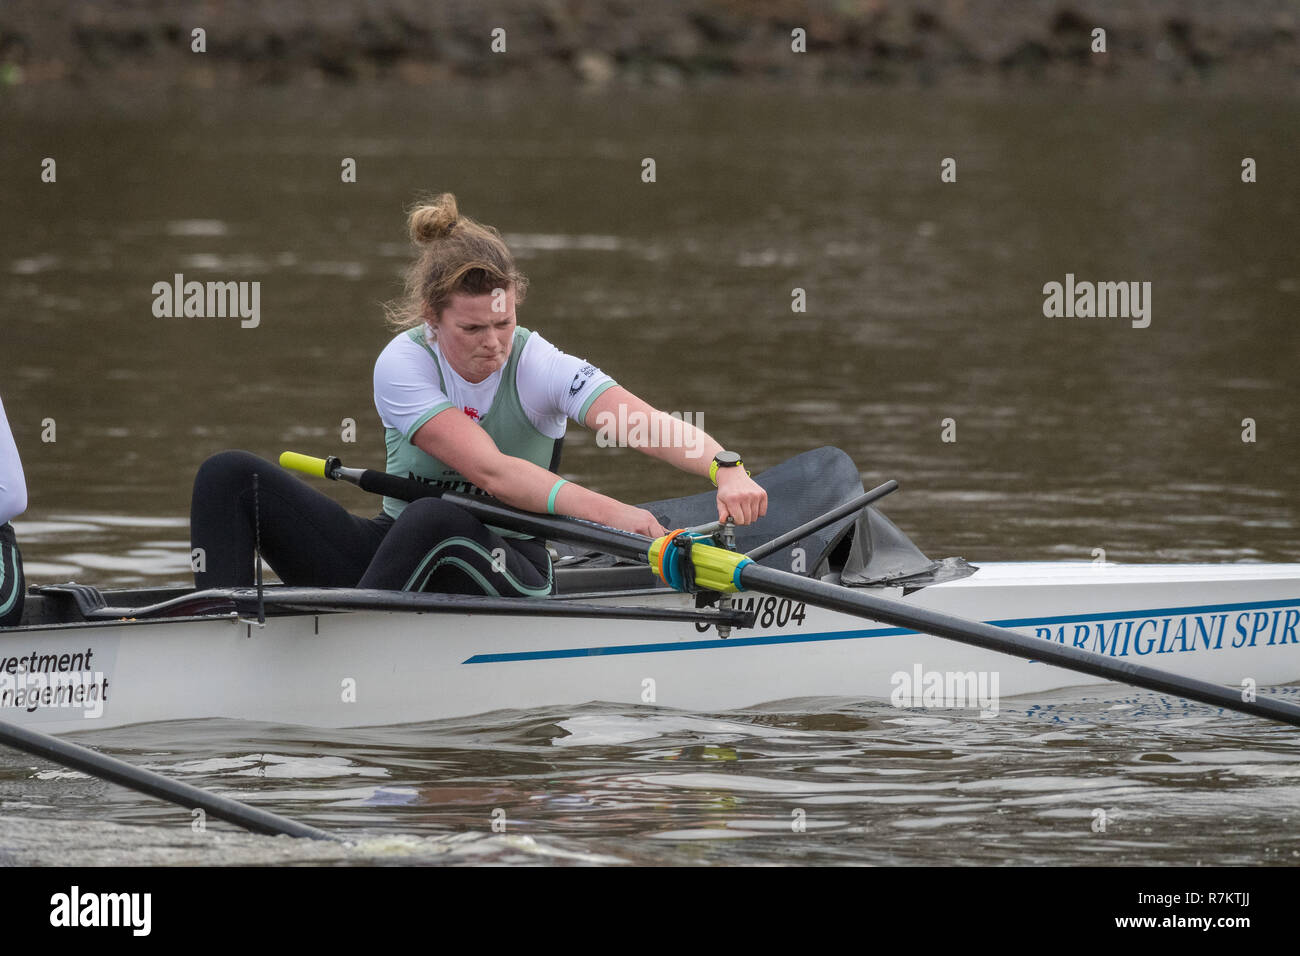 London, UK. 10th December 2018. Boat Race Trial VIIIs (Eights) are the only opportunity either side have to race the full course from Putney to Mortlake with the Race Umpires, so provide an important test for rowers and coxes alike.  They allow coaching teams to analyse the progression and potential and are often influential in final selection of crews for the Blue Boats.  The first Trial Eights race was staged by Oxford 153 years ago in 1859 and Cambridge joined the tradition three years later in 1862.  This year CUWBC have chosen to name their crews after two Nobel Prize winning women, Marie Stock Photo